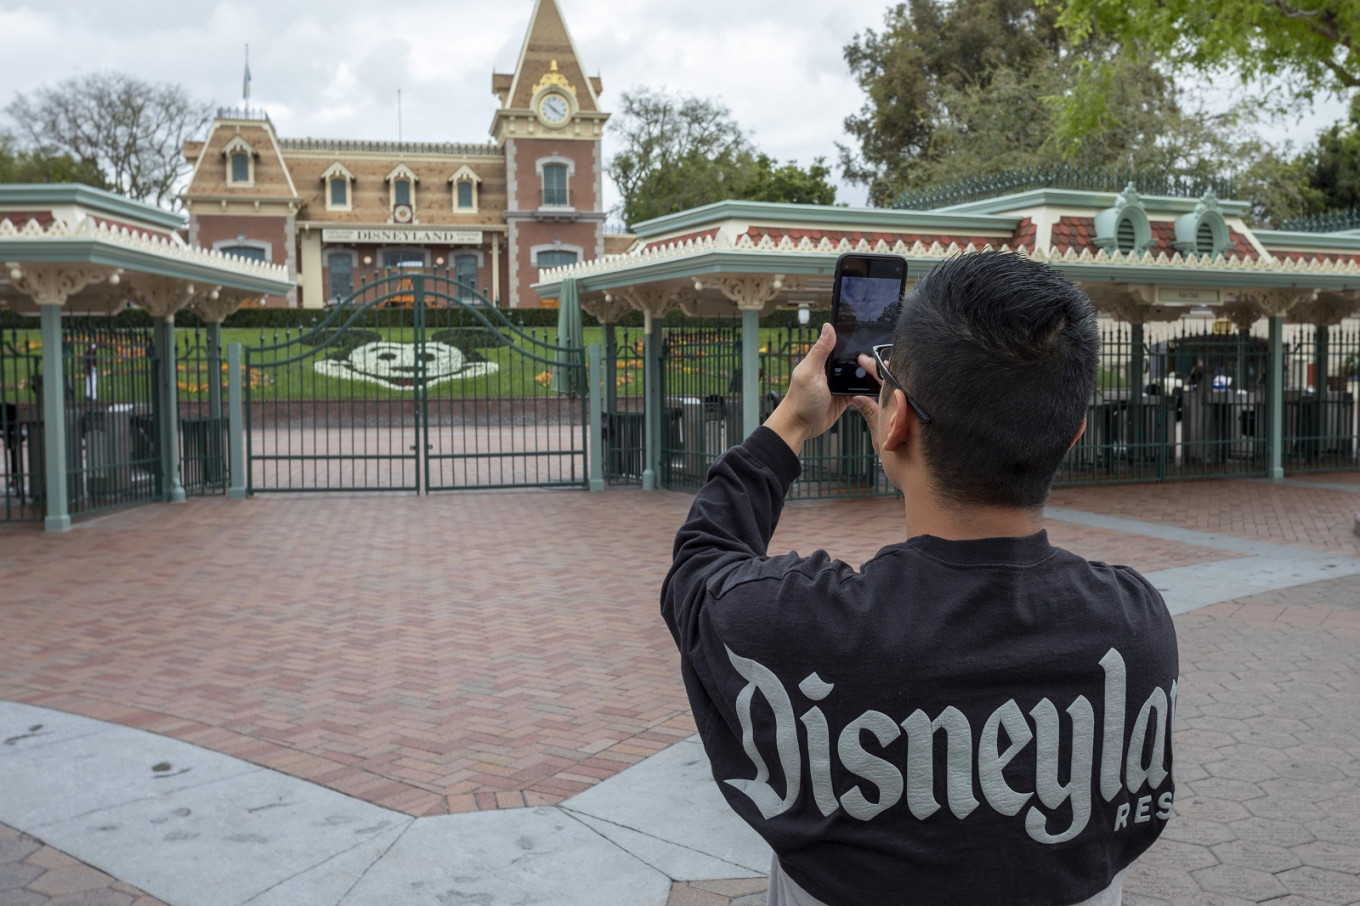 Disneyland Postpones Reopening of Theme Park, Resort